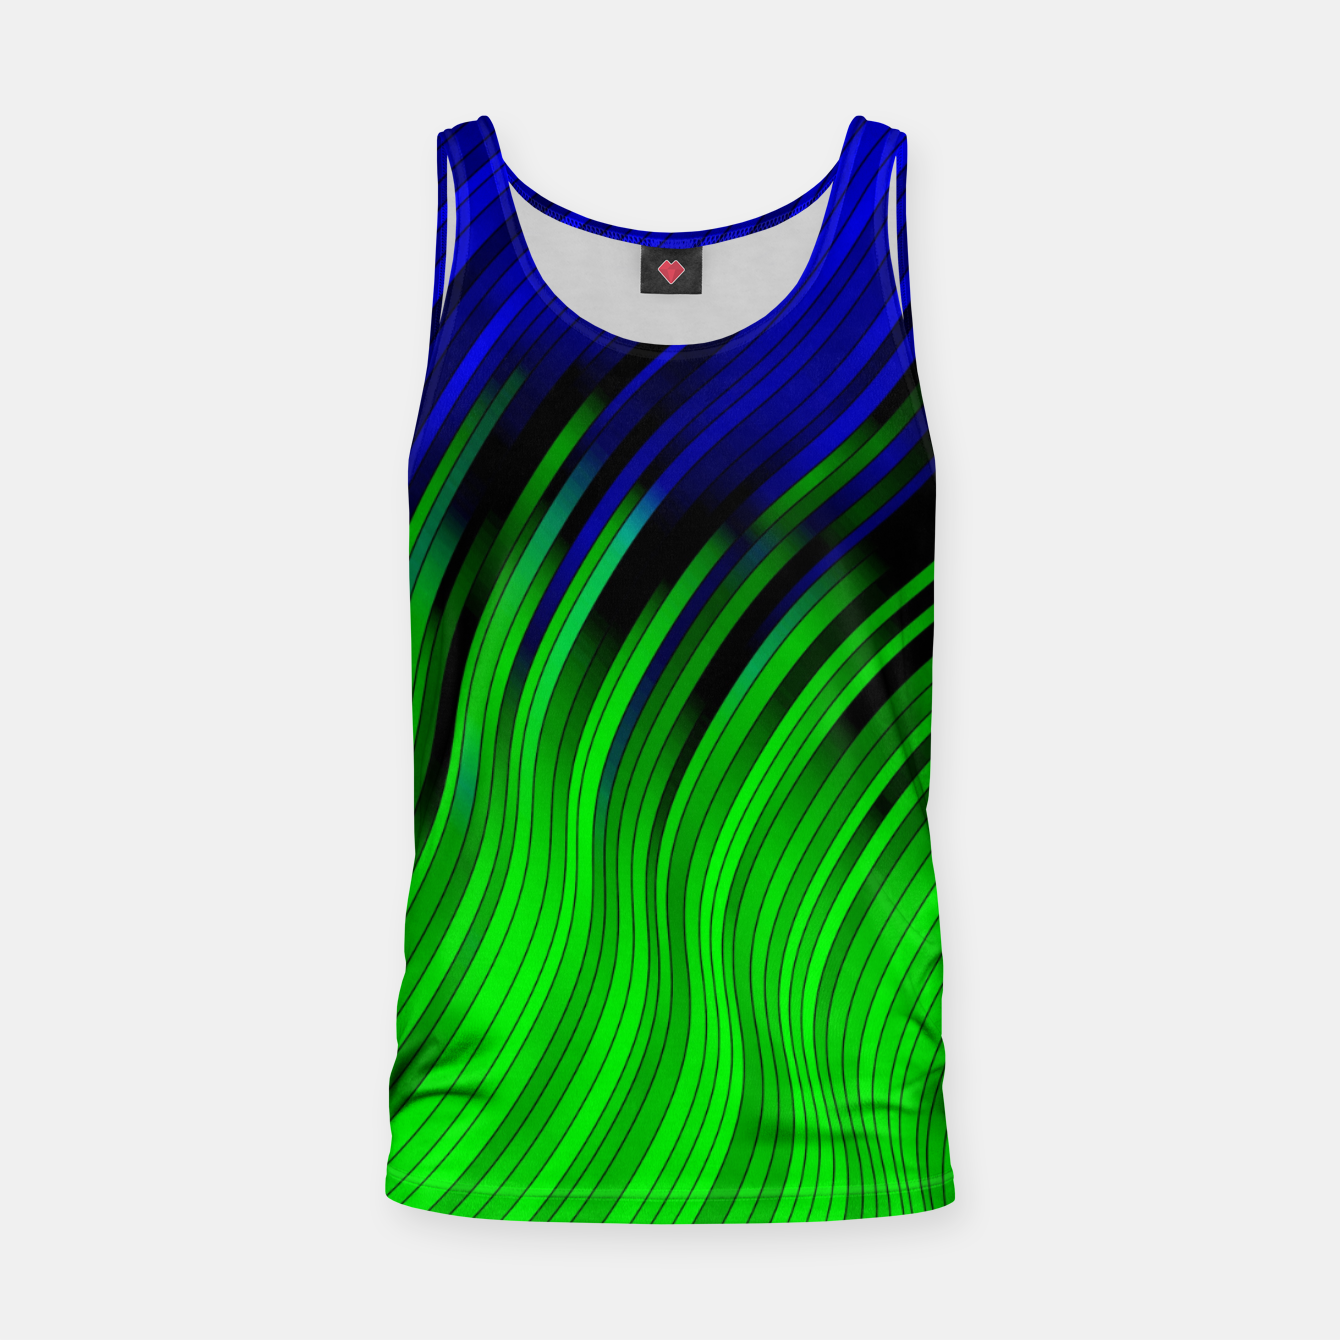 Foto stripes wave pattern 2 with lines vtgi Tank Top - Live Heroes